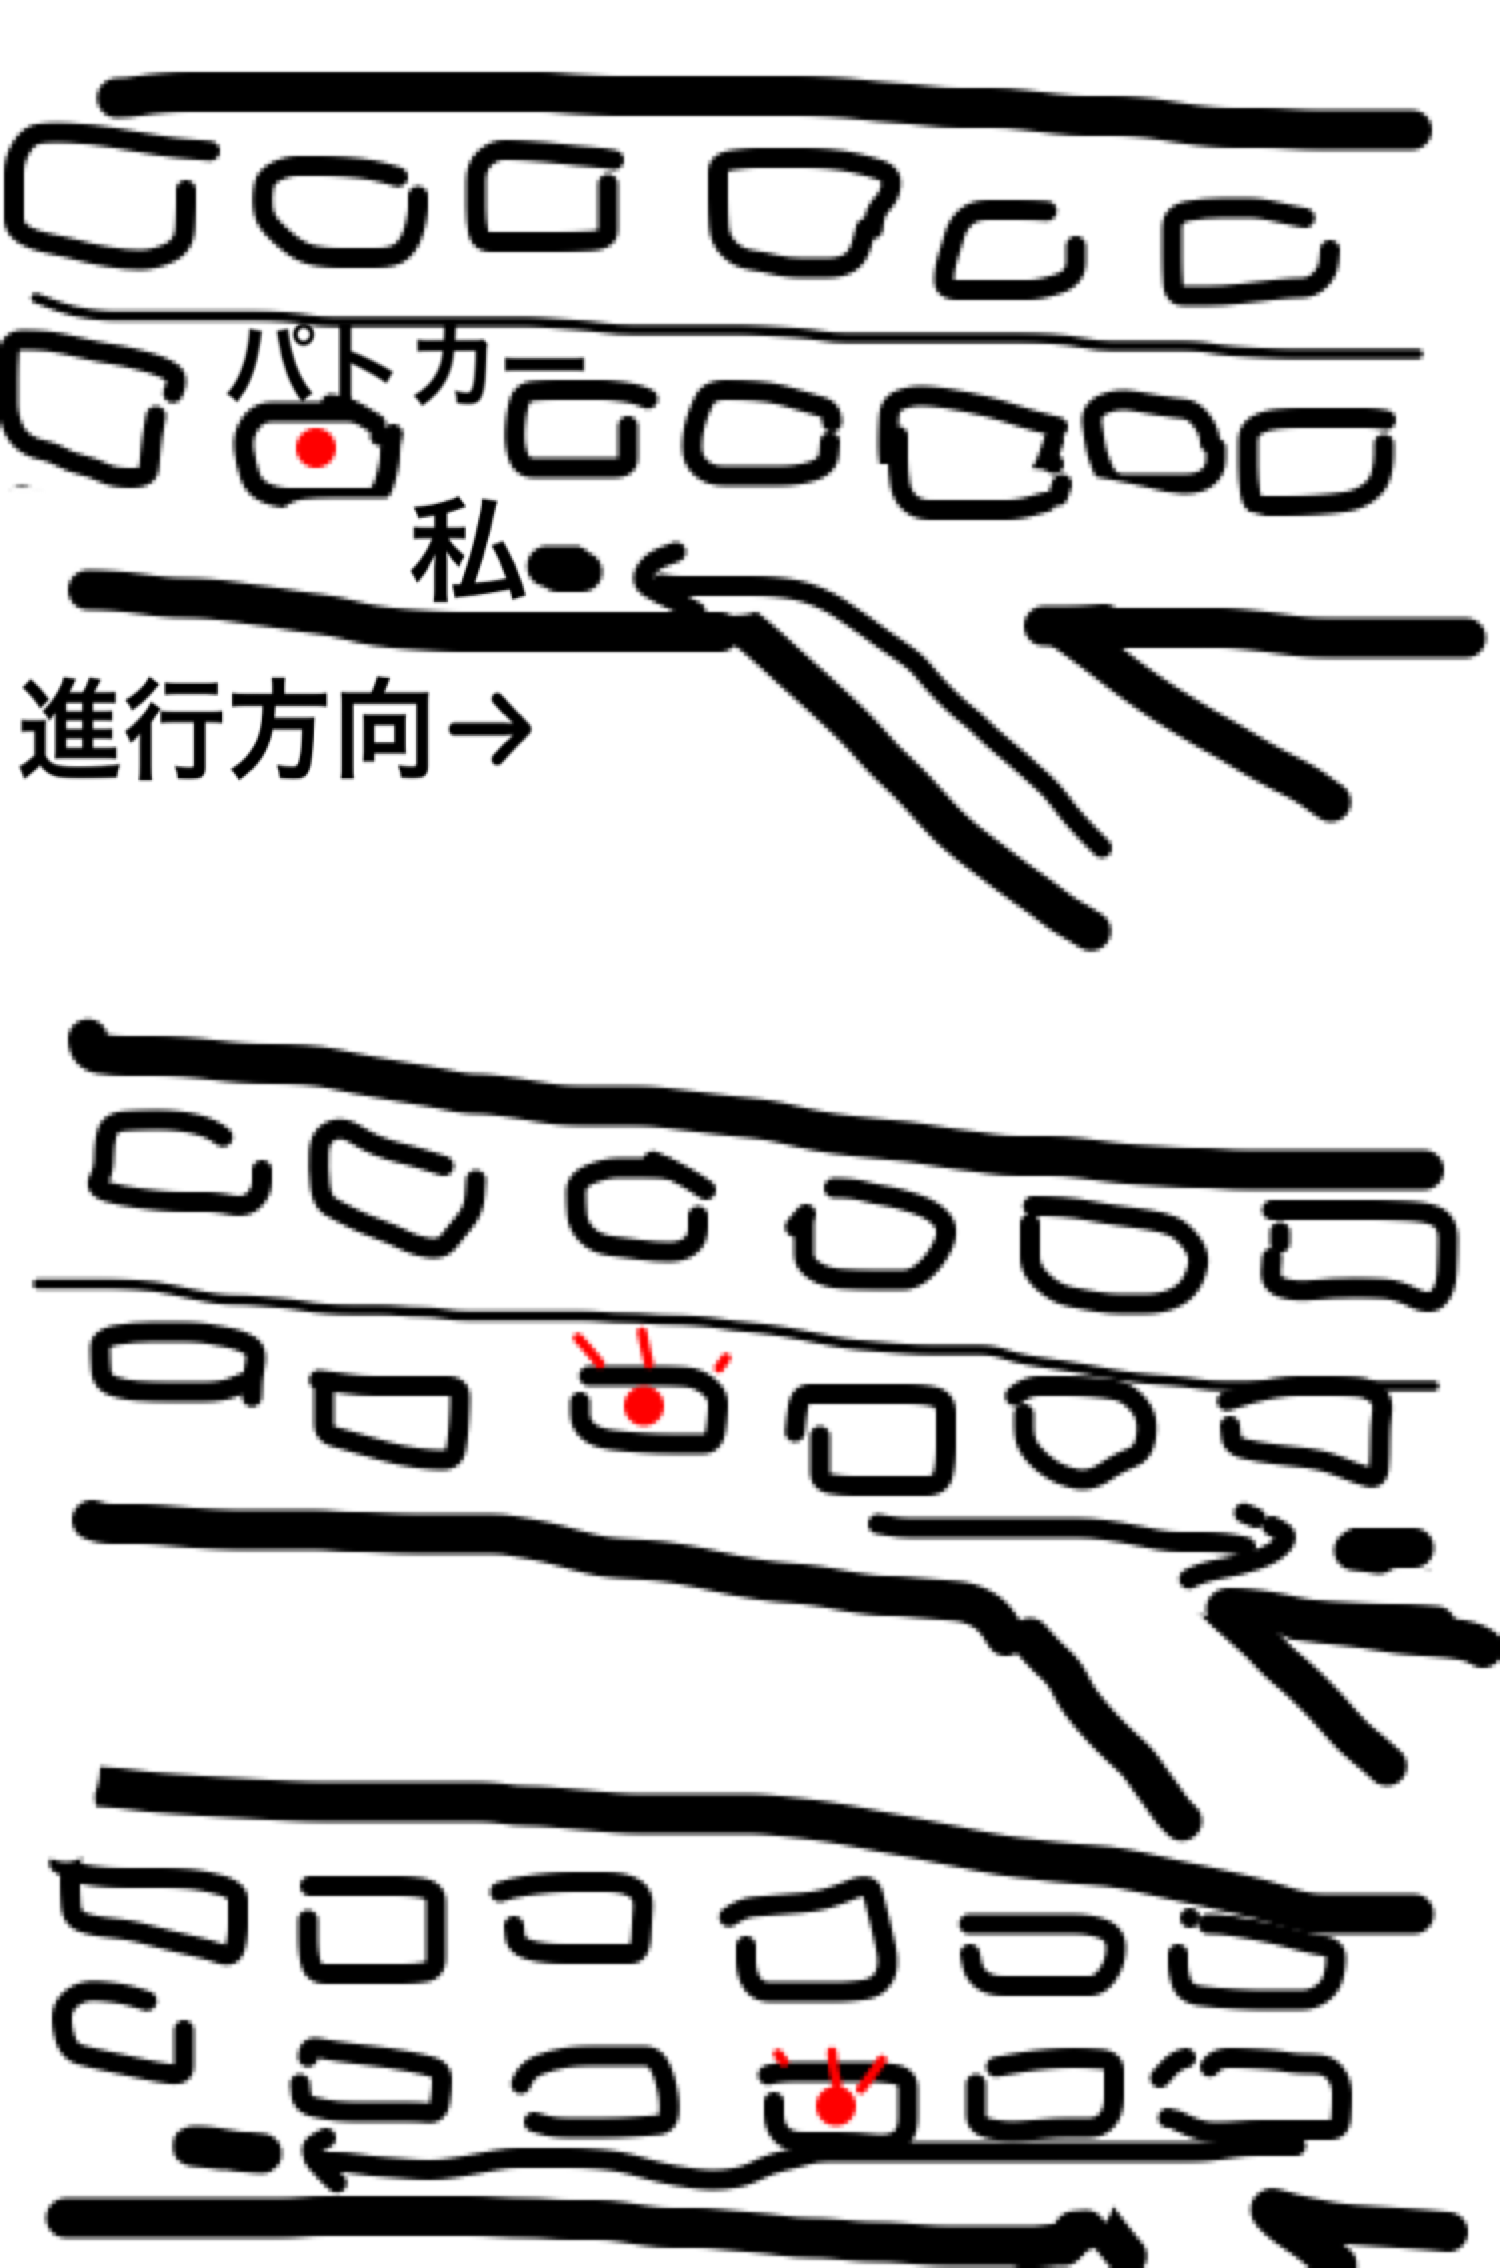 2020110220281999a.png